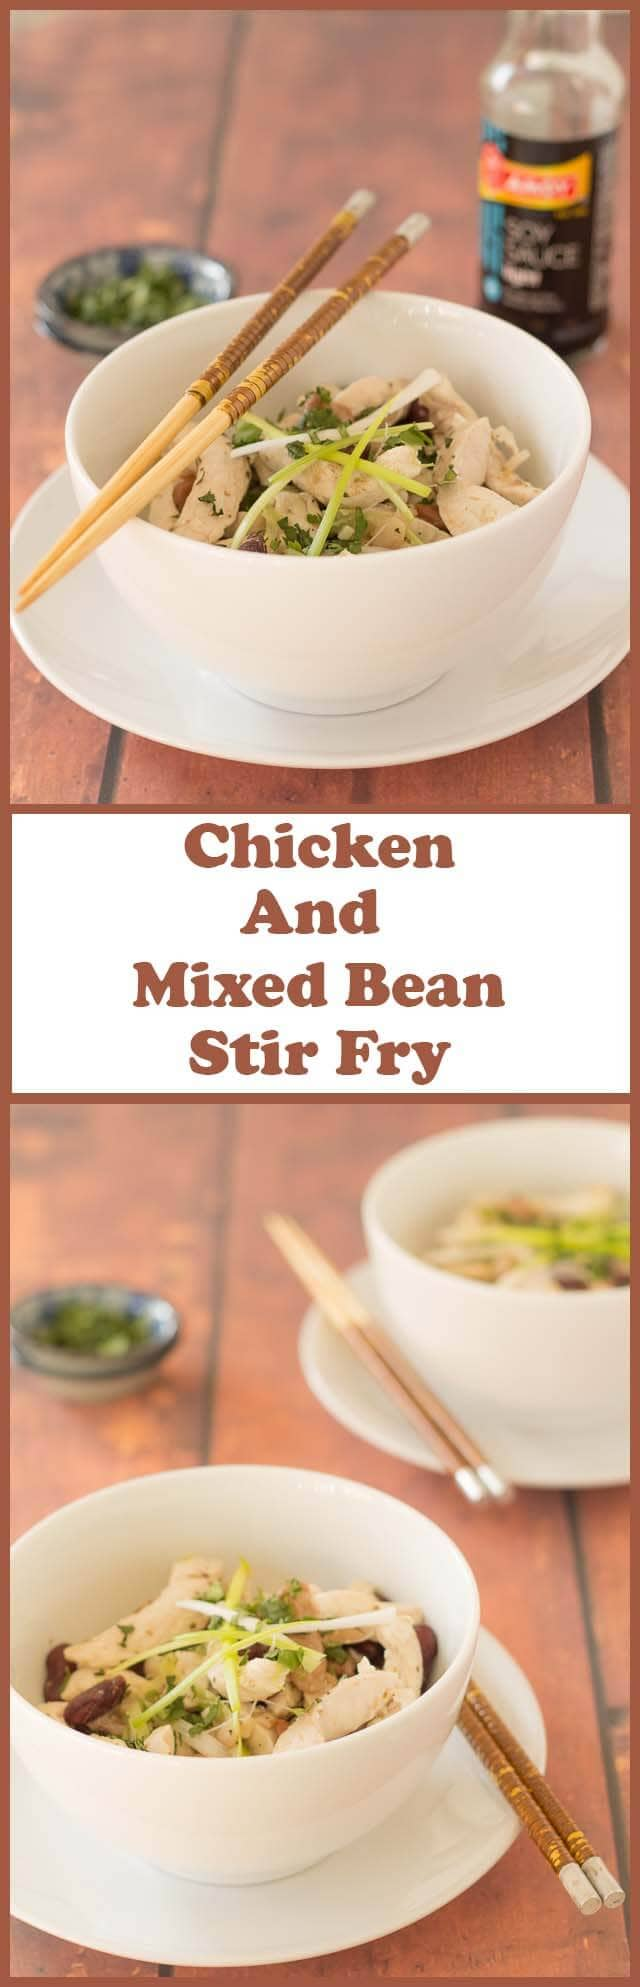 This chicken and mixed bean stir fry recipe is just about as simple, healthy and time saving as stir fry recipes get! Chicken breasts, a can of mixed beans and some store cupboard spices are all it takes to make this low cost meal for two!